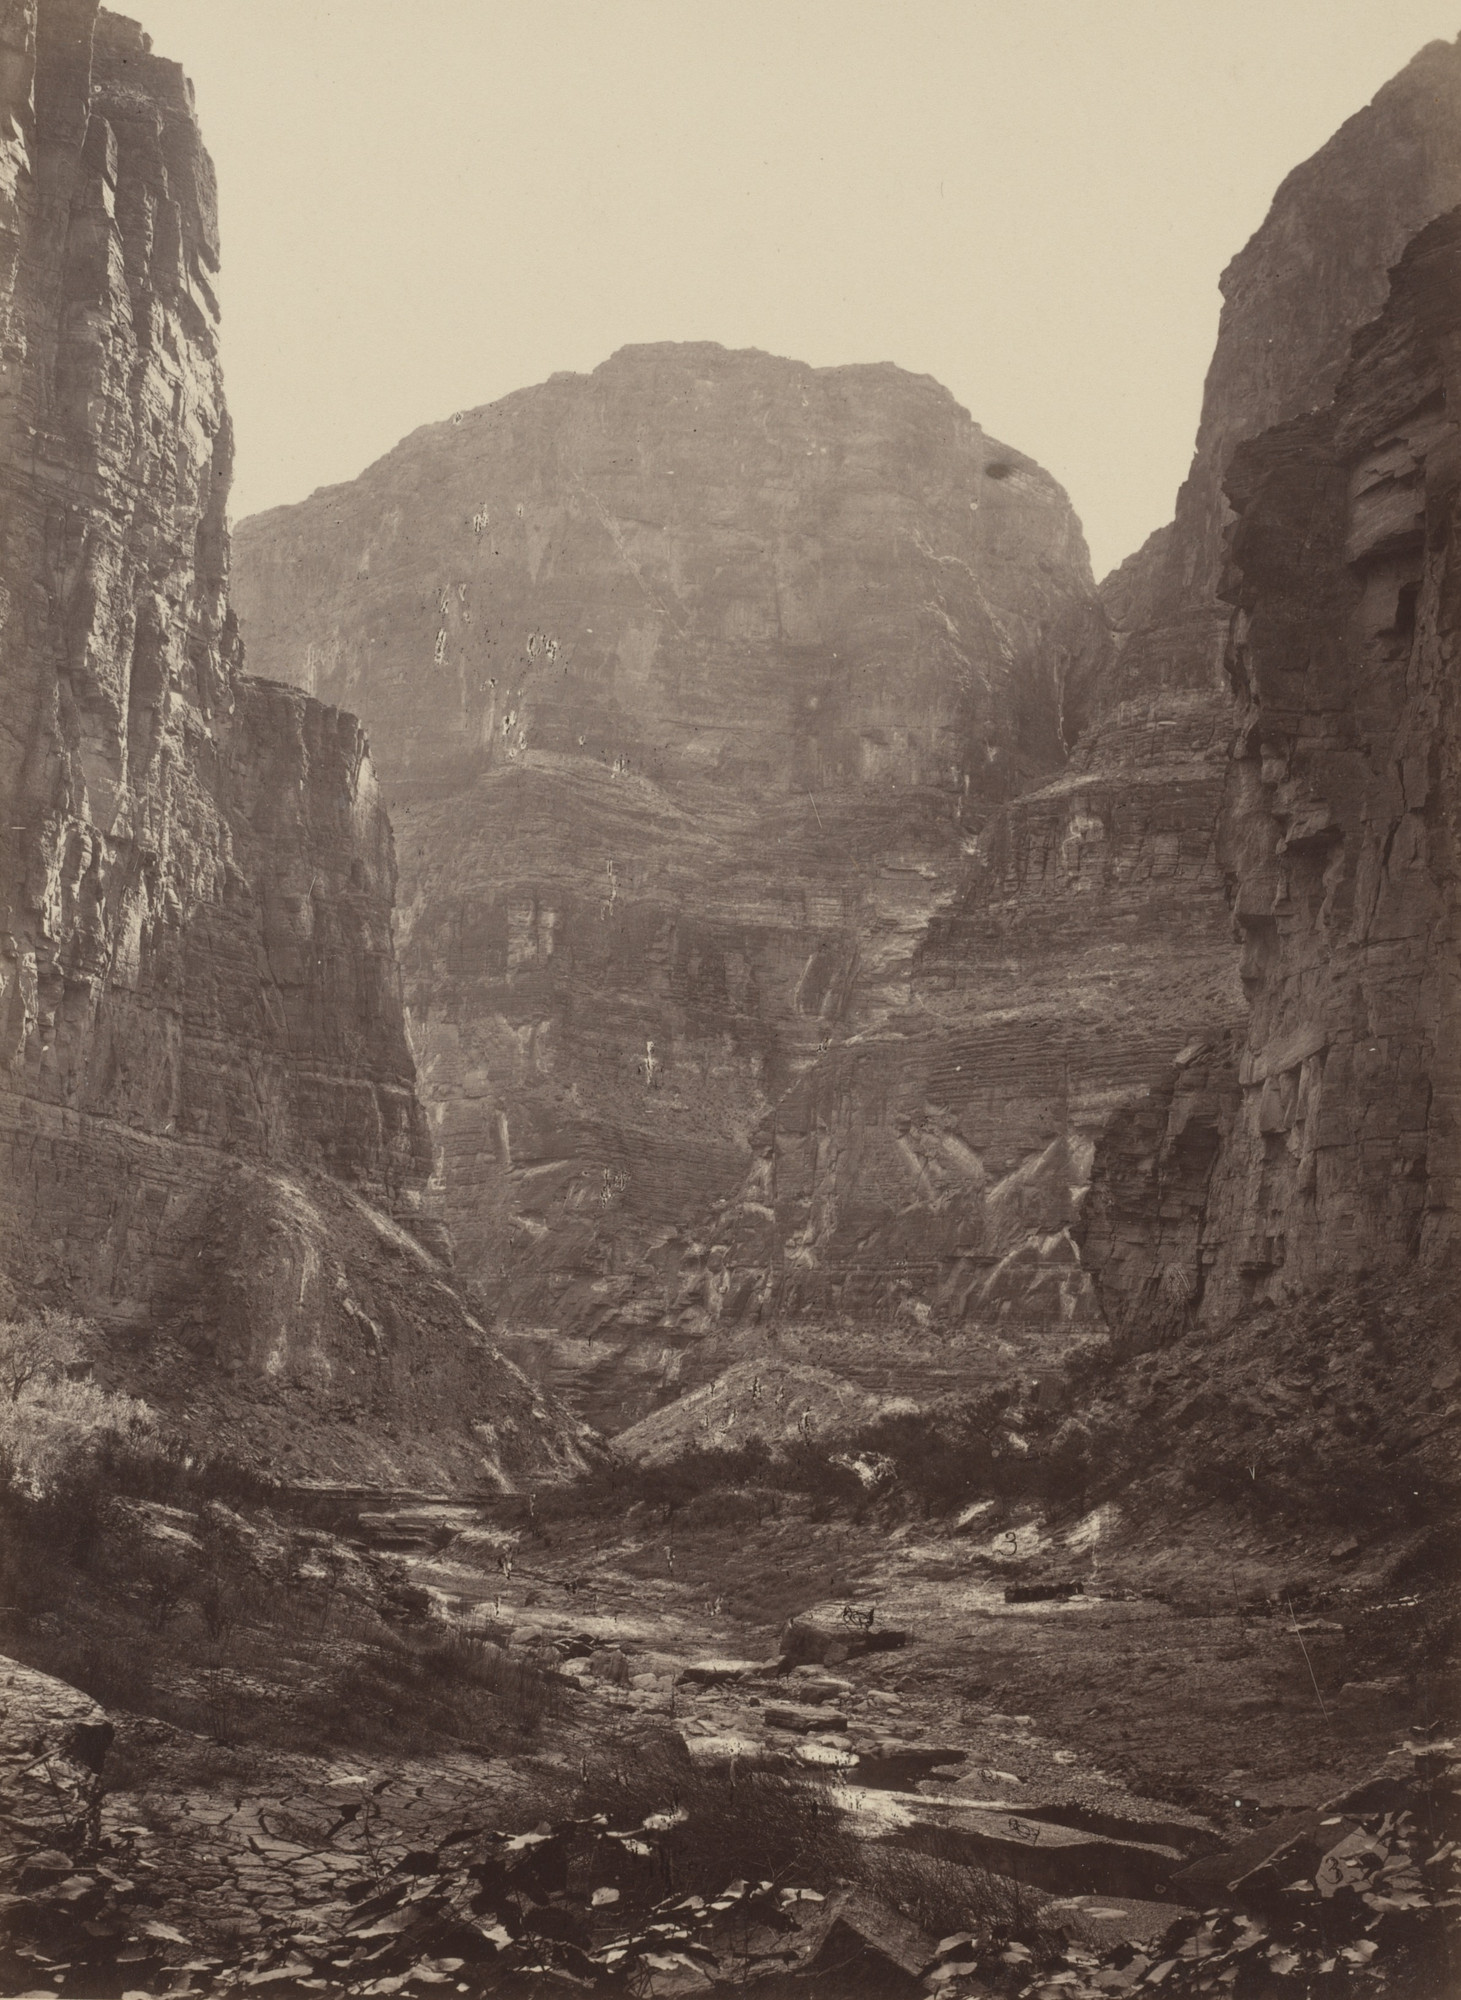 Timothy O'Sullivan, William H. Bell. Canyon of Kanab Wash, Colorado River, Looking South. Seasons of 1871, 1872 and 1873